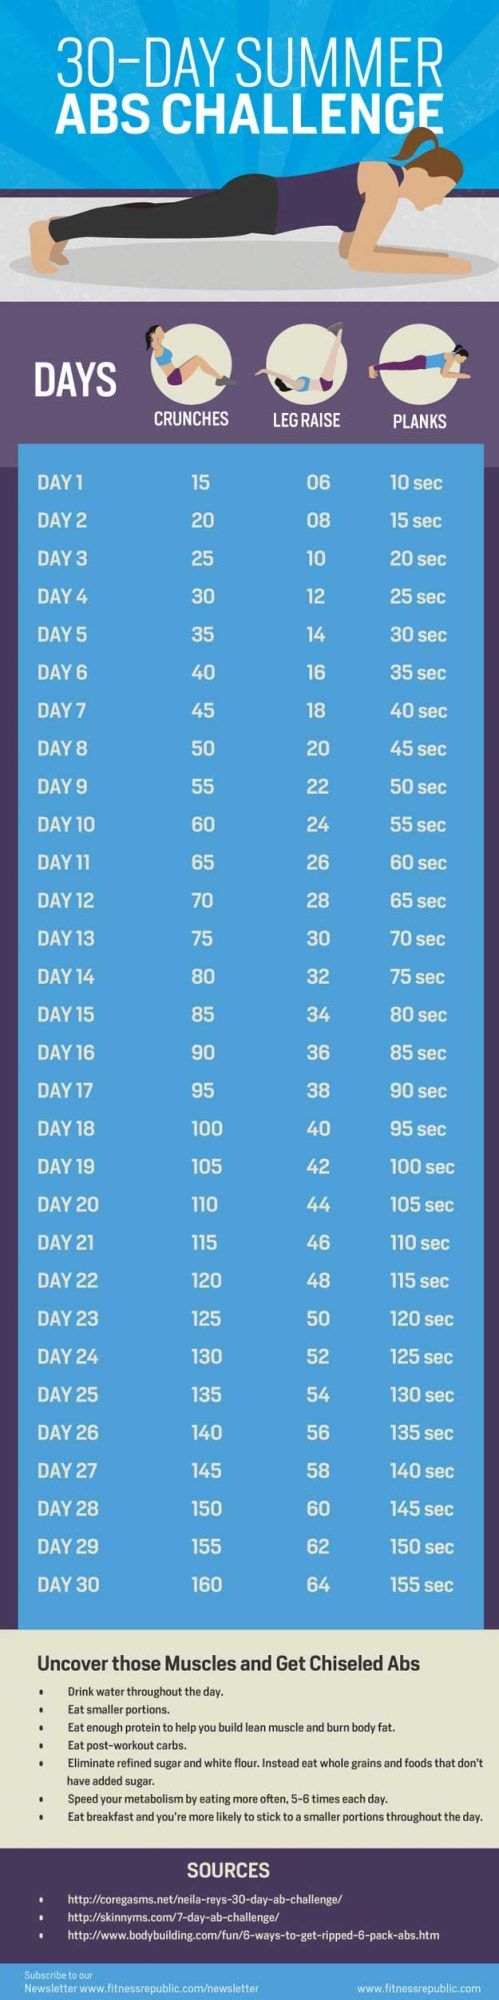 30-Day Summer Abs Challenge | 14 Best Fitness Workouts for Head to Toe Toning, check it out at http://makeuptutorials.com/best-fitness-workouts-makeup-tutorials